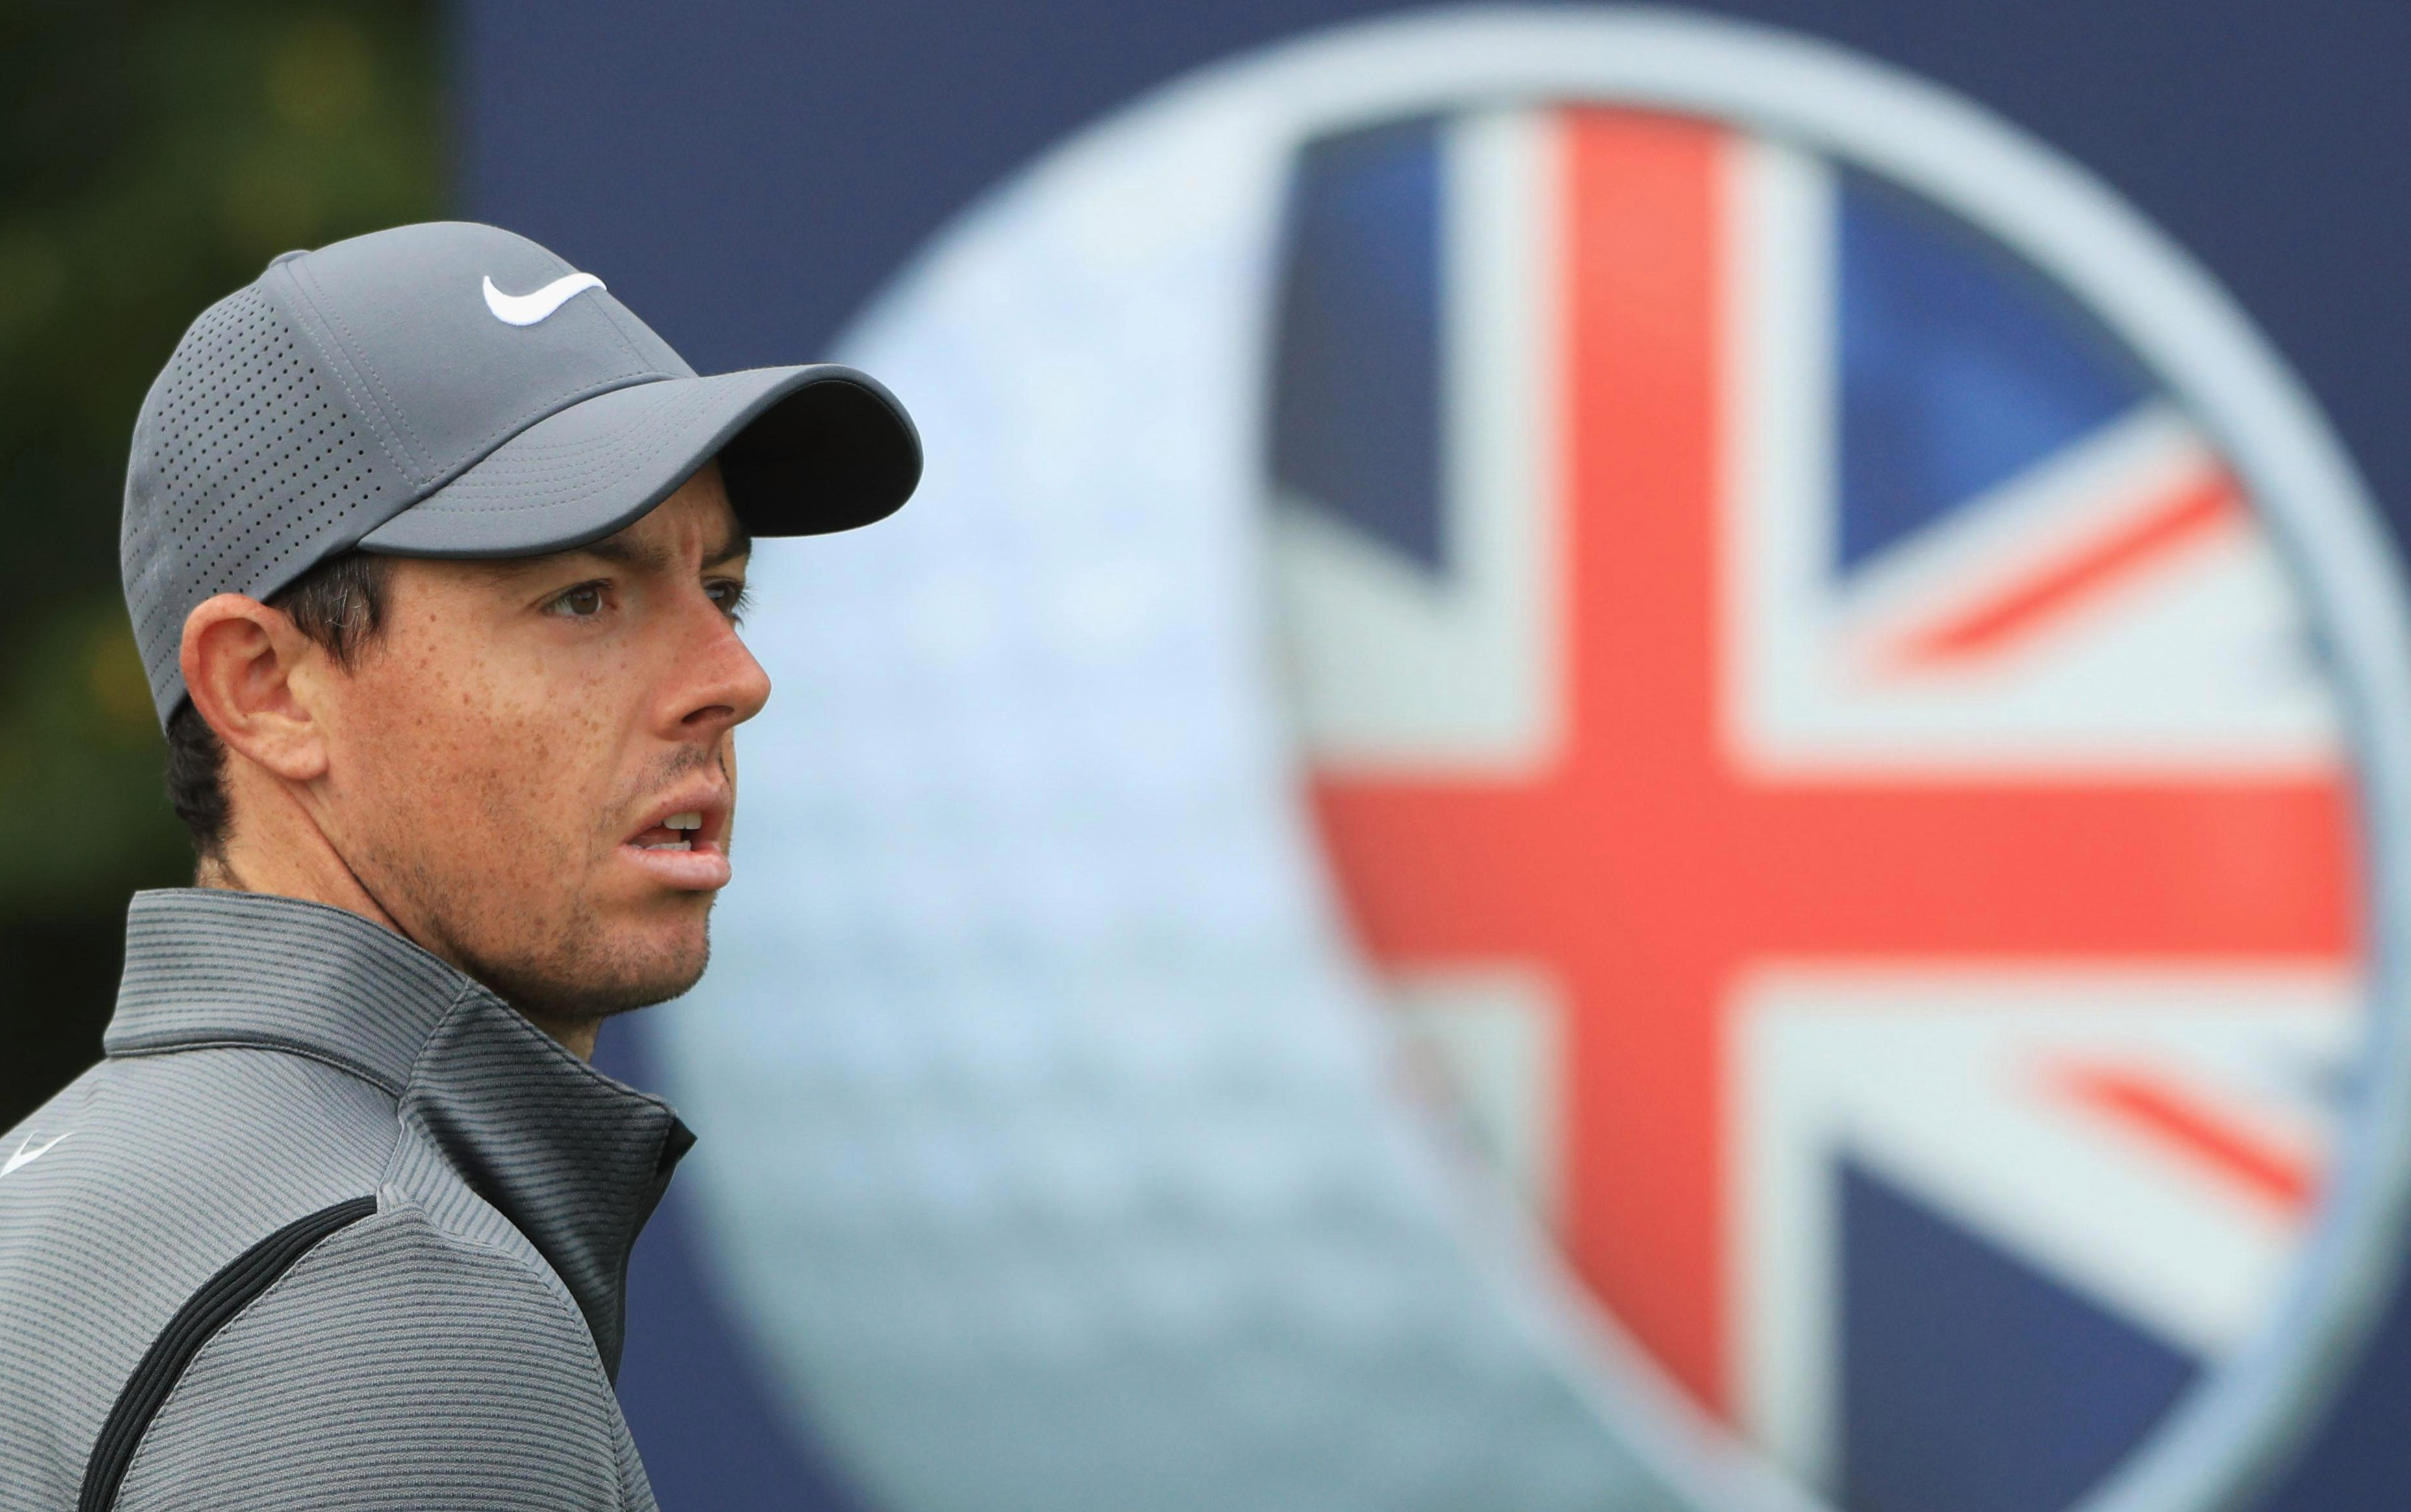 Rory McIlroy certainly put the wind up his opponents at the British Masters